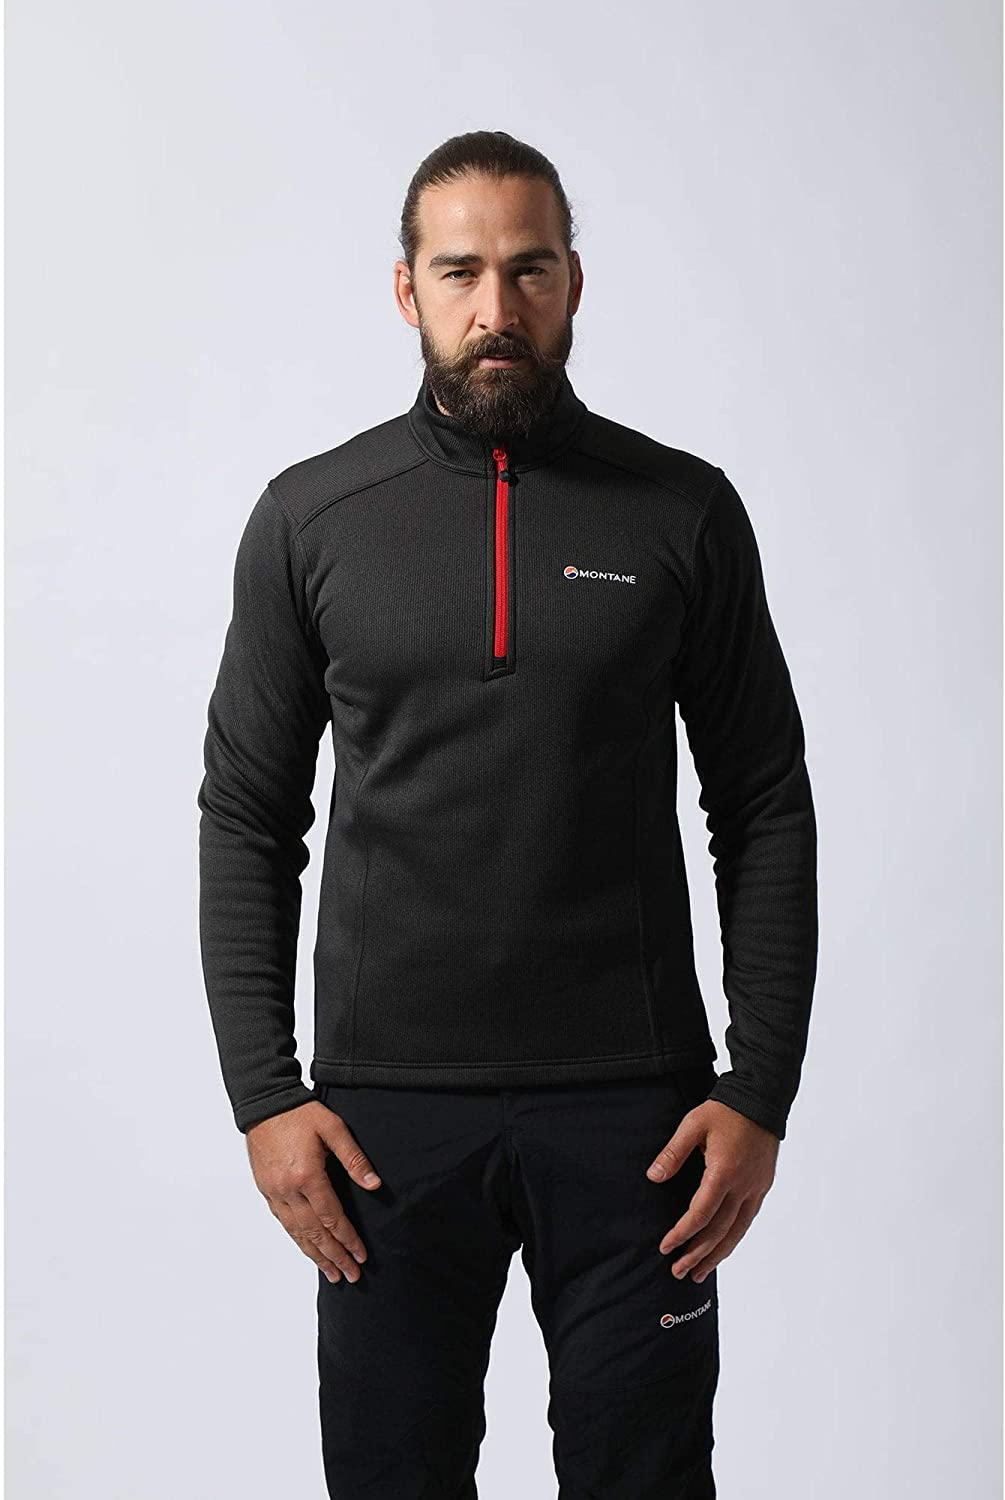 AW19 Montane Forza Pull-On